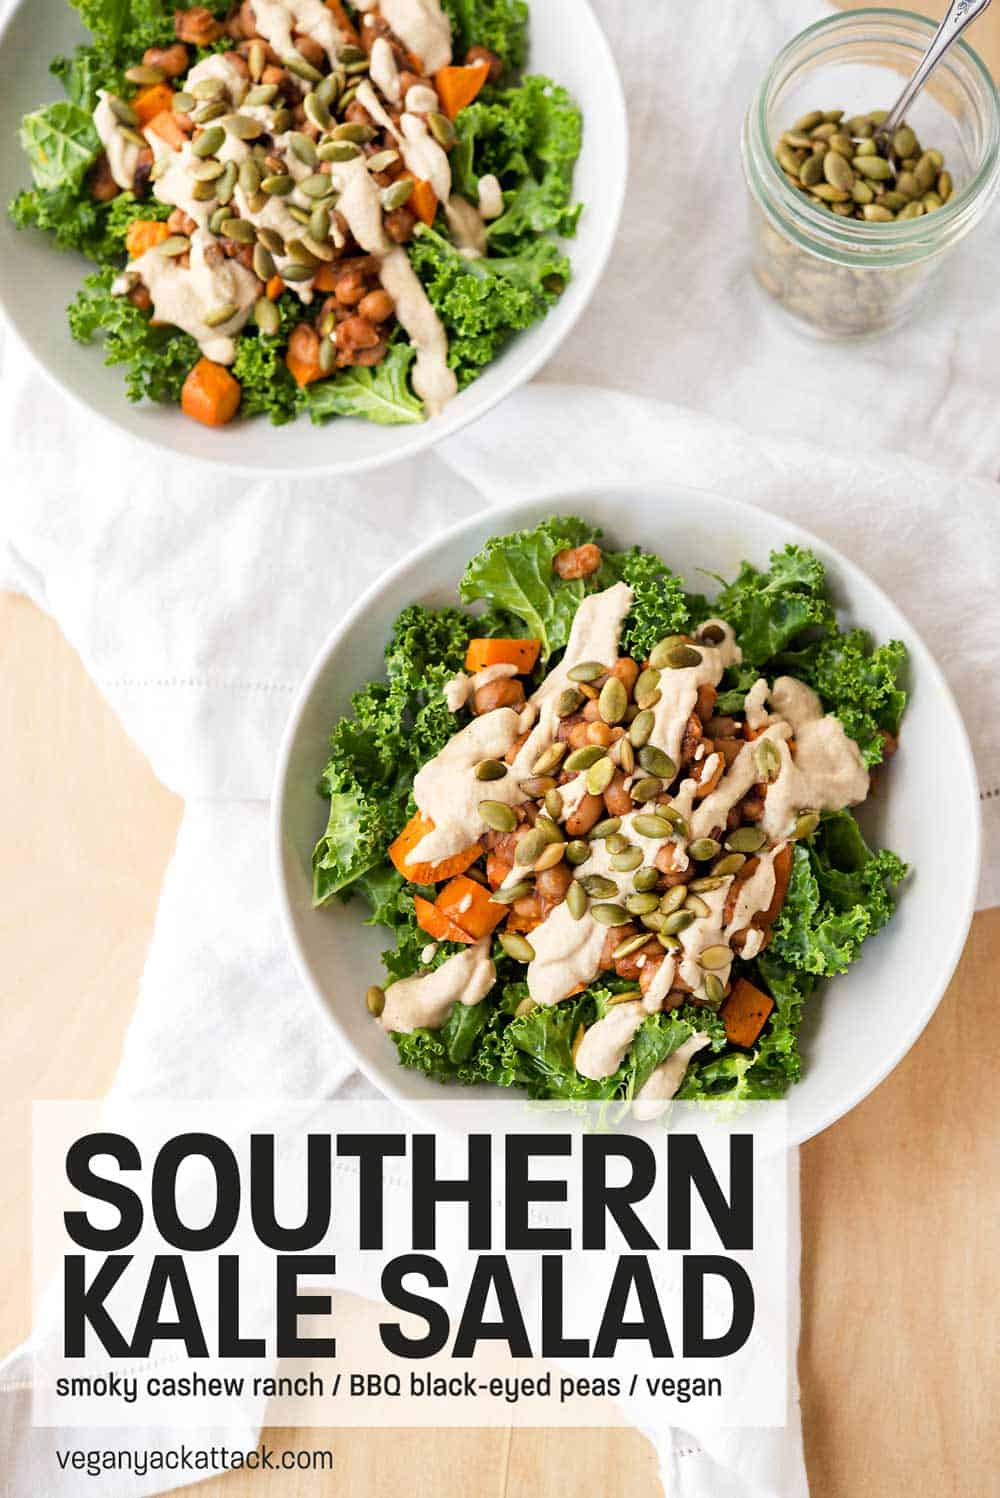 Two bowls of Southern Kale Salad on a white linen and wood table